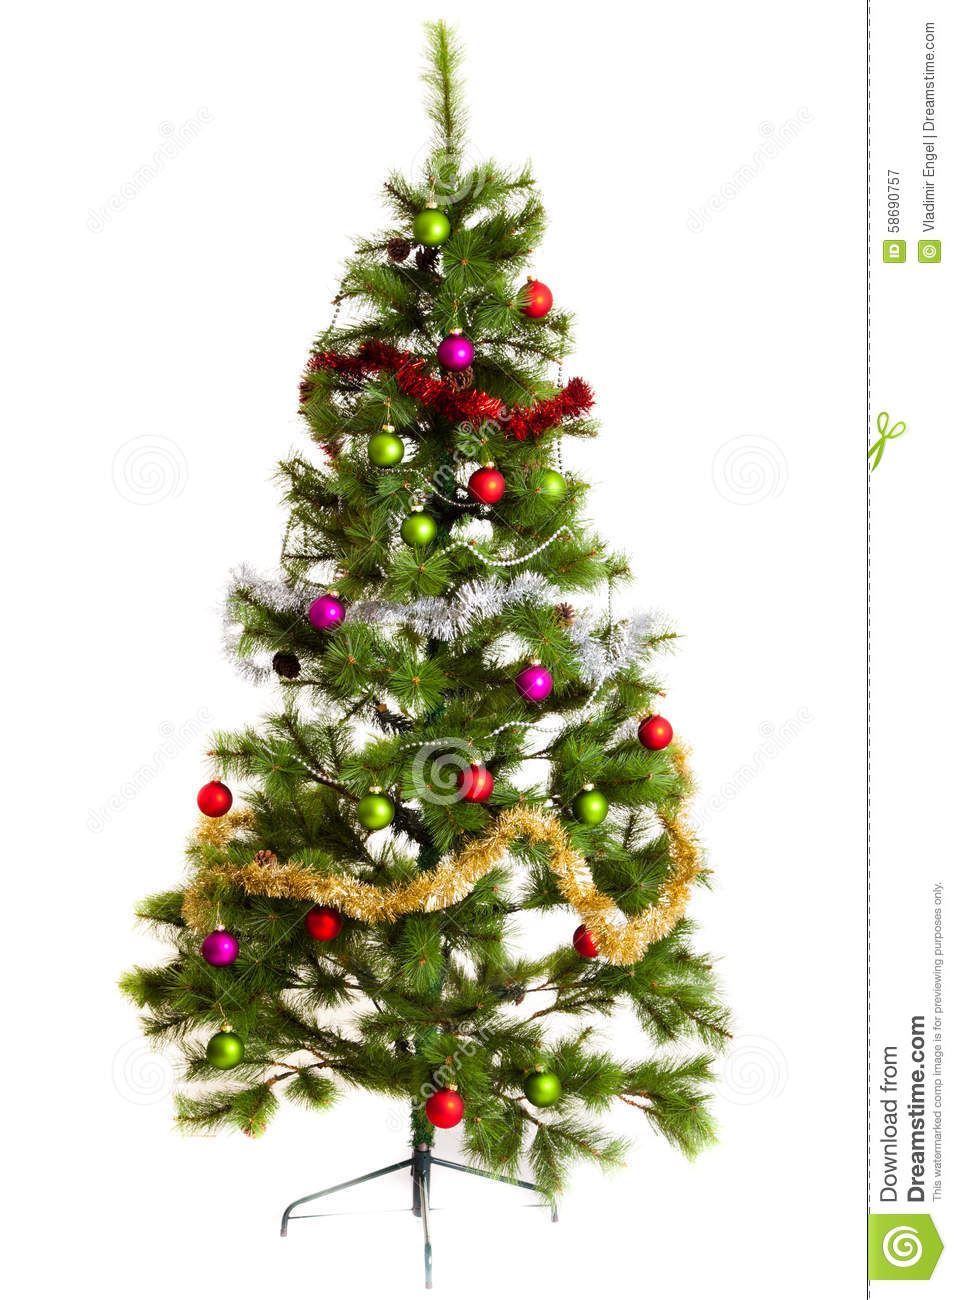 Isolated christmas tree decorations 2016 happy new year for Christmas decorations 2016